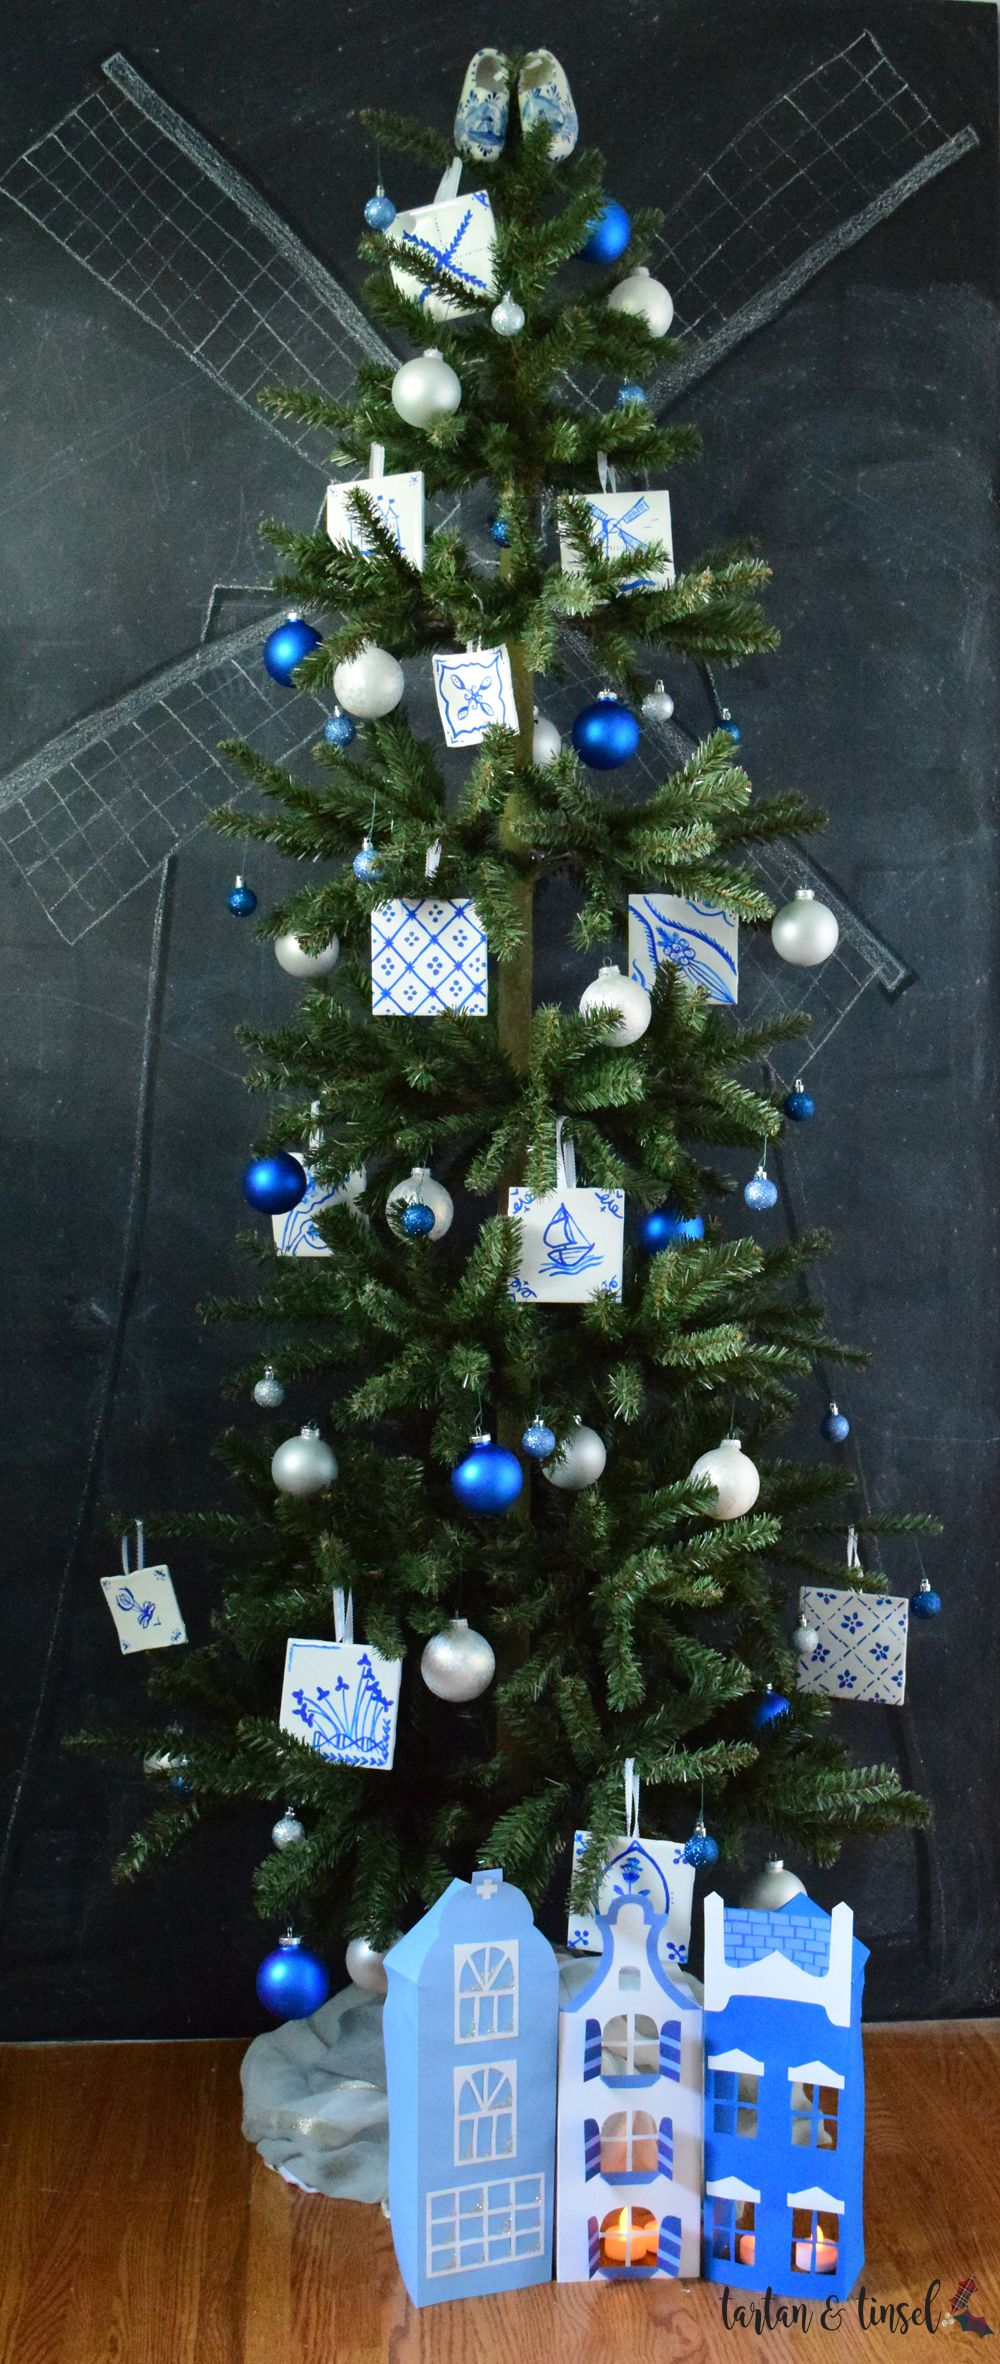 Delft Tile Themed Christmas Tree Blue And White Christmas Tree Dutch Christmas Www Tartanandtin Christmas Tree Themes Blue Christmas Tree Christmas Decorations